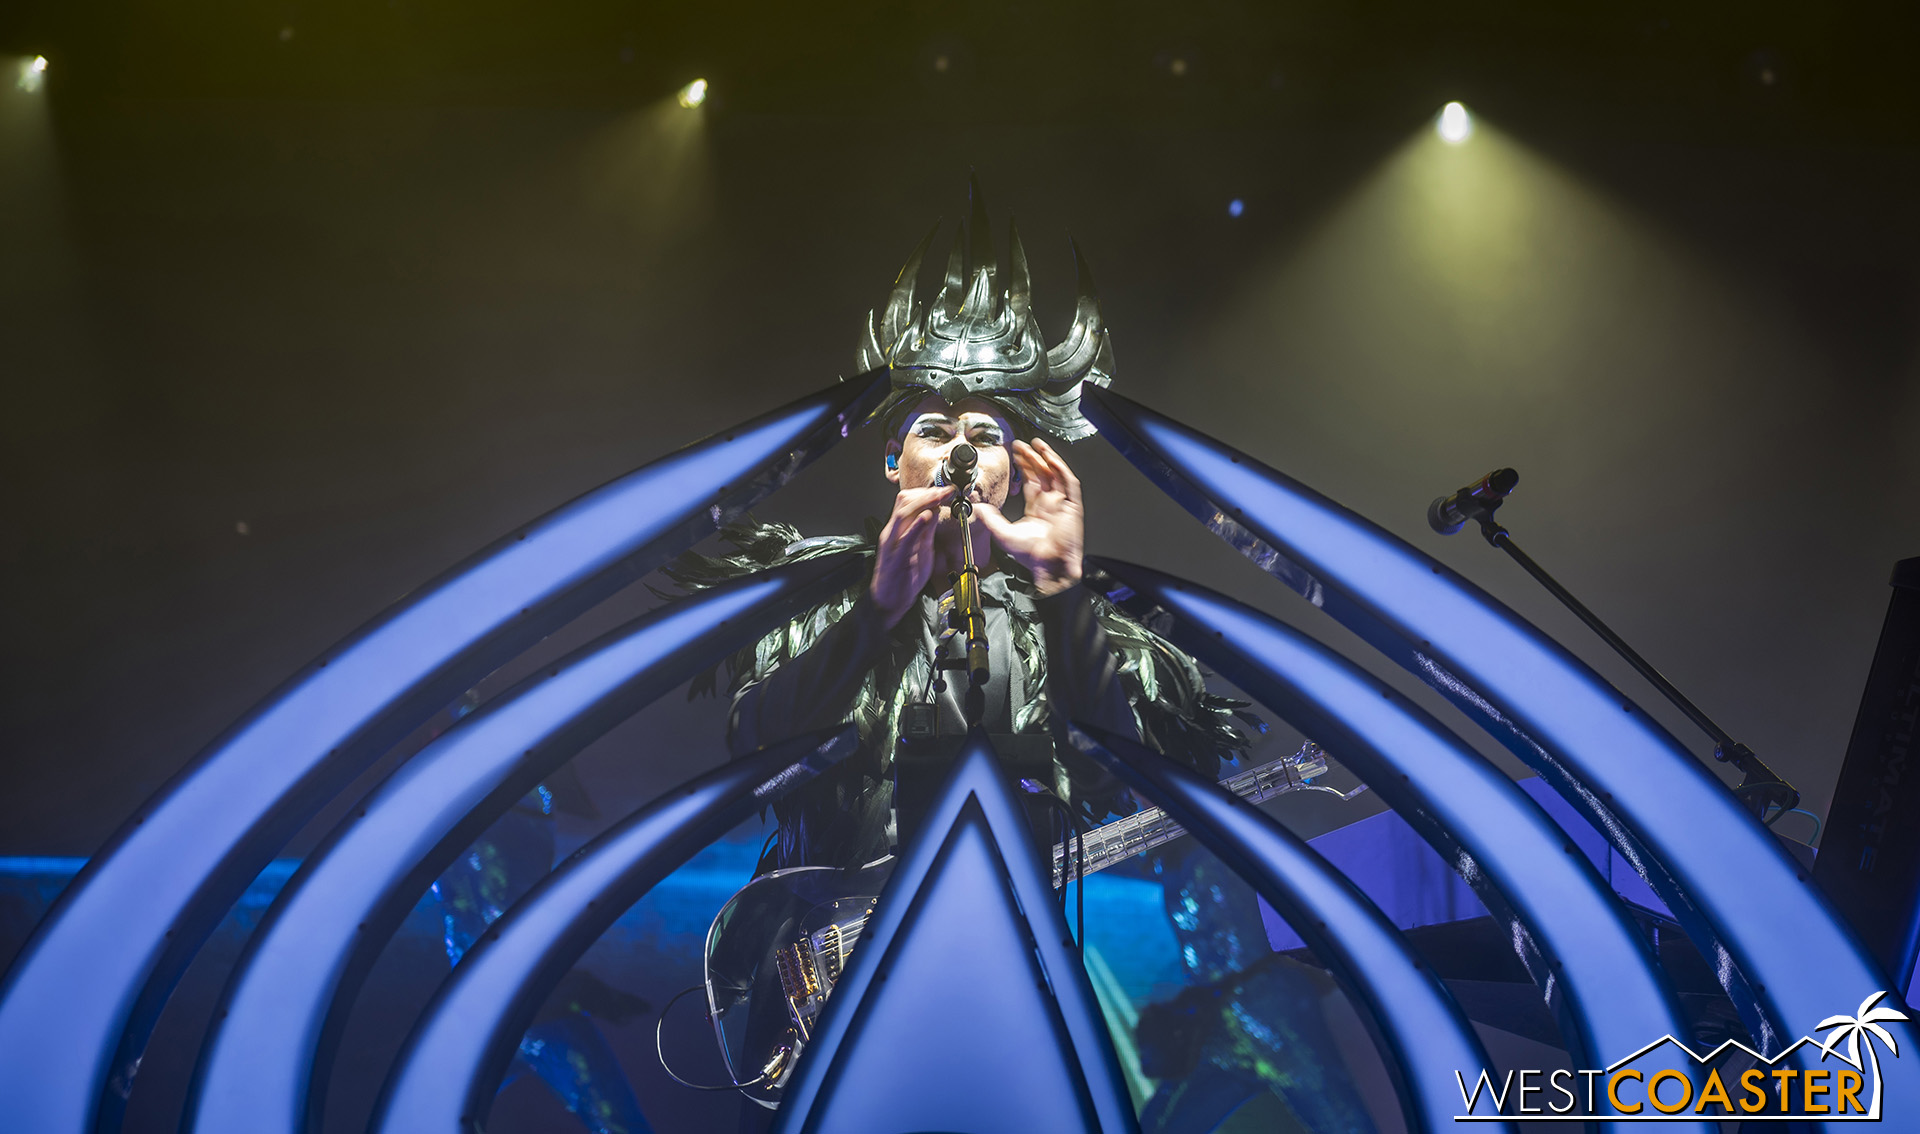 Vocalist, Luke Steele, front and center and in full regalia with Empire of the Sun.